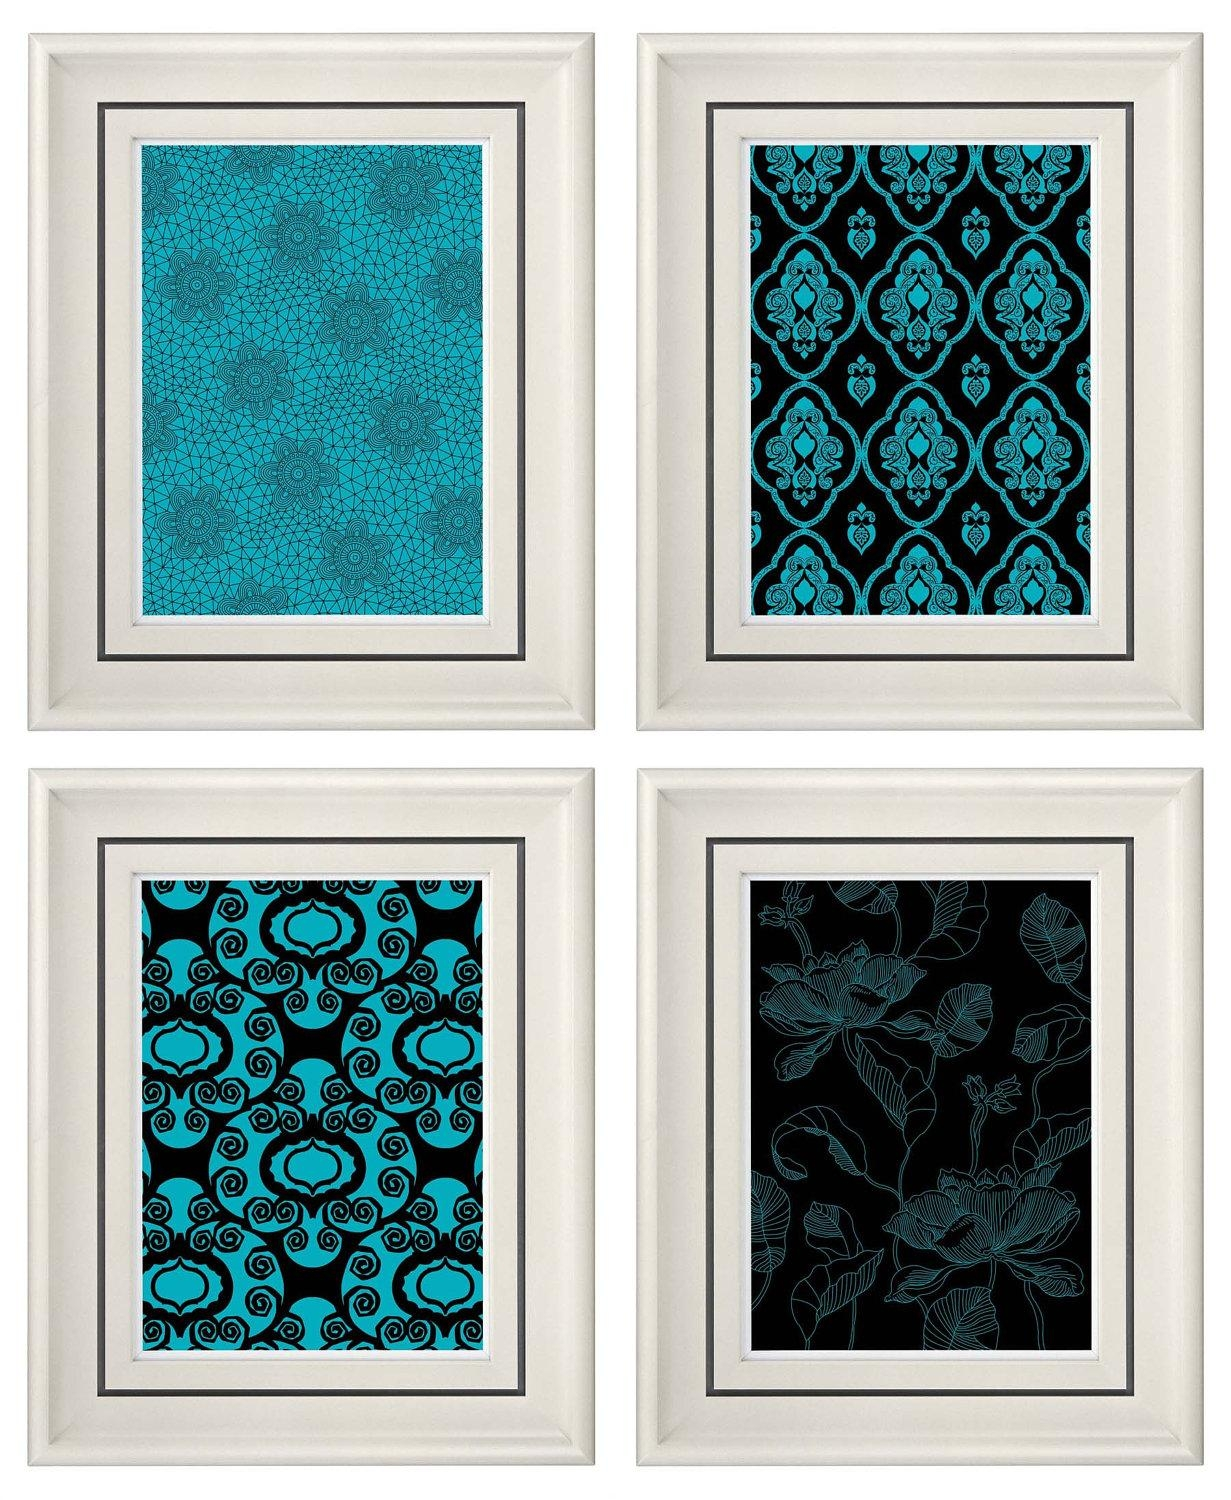 Wall Decor Turquoise – Home Design Throughout Black And Teal Wall Art (Image 19 of 20)